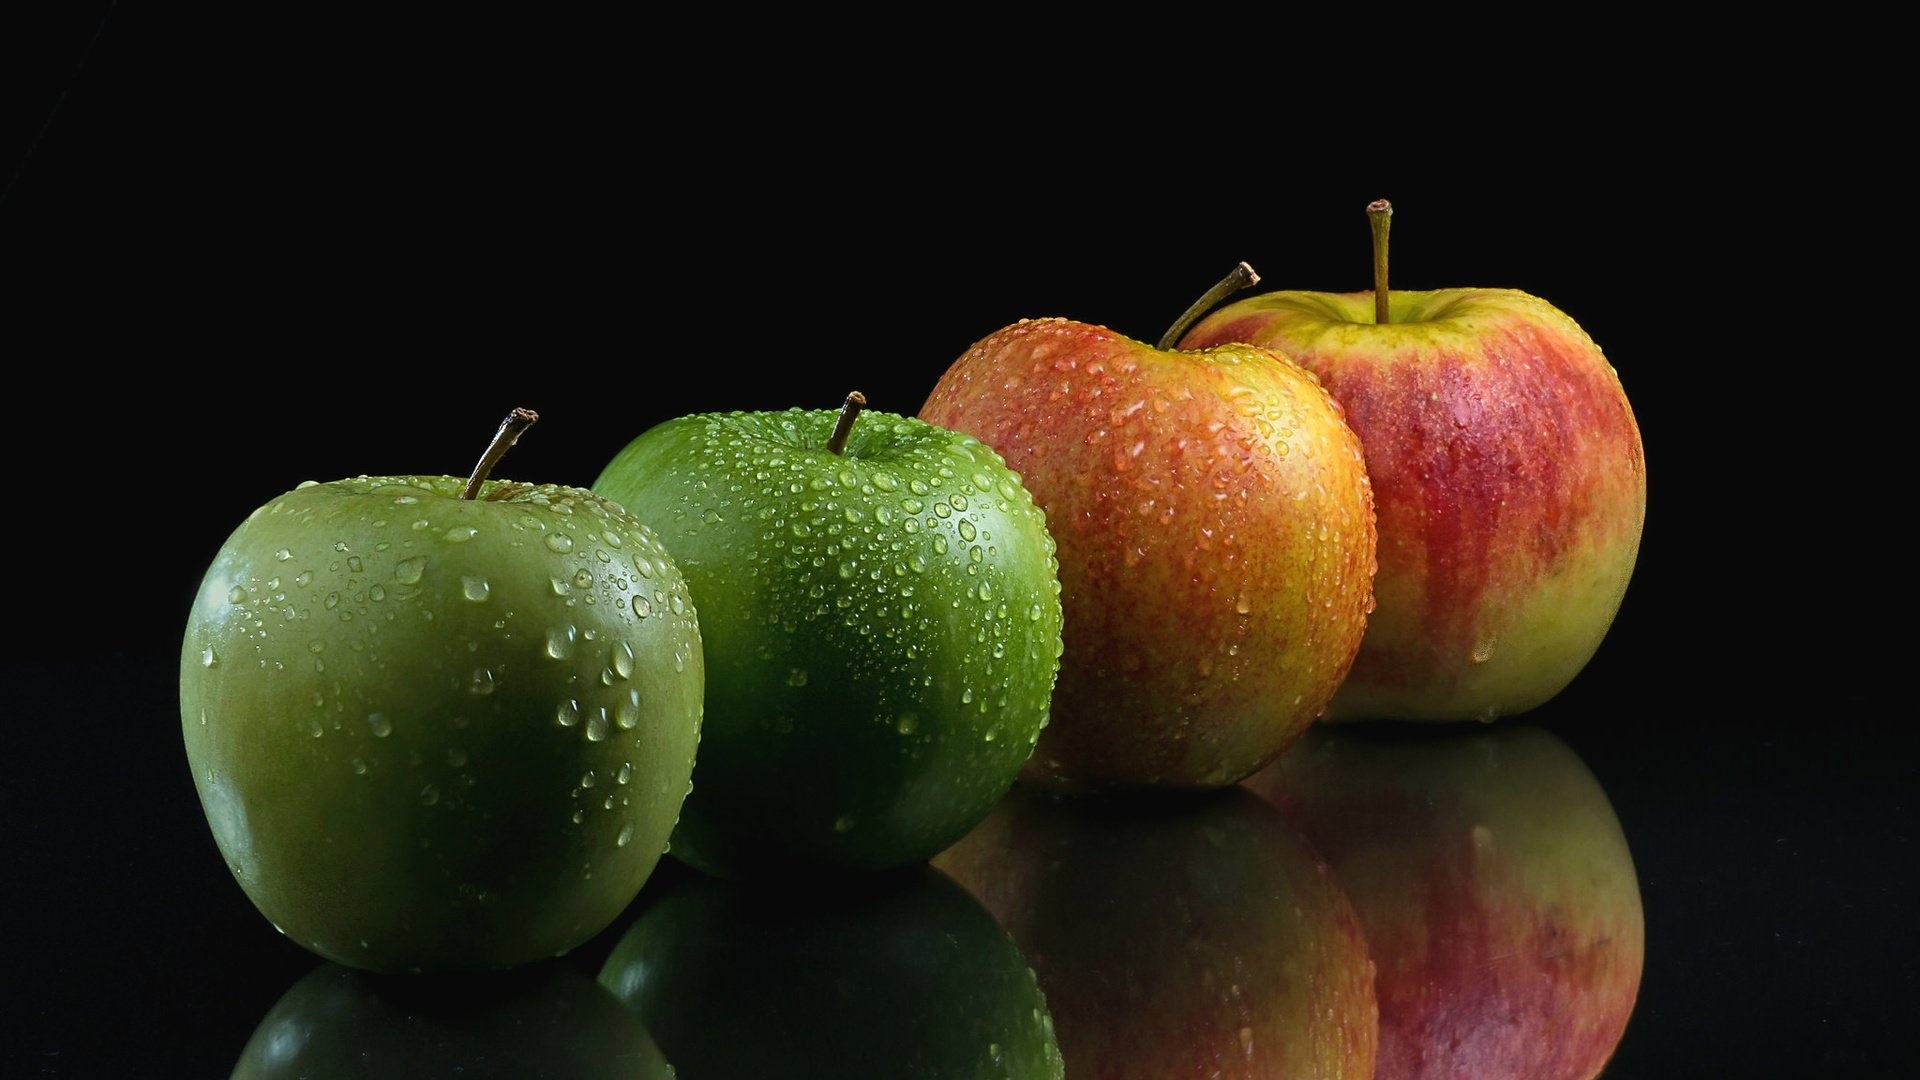 Apple Fruit wallpaper for desktop